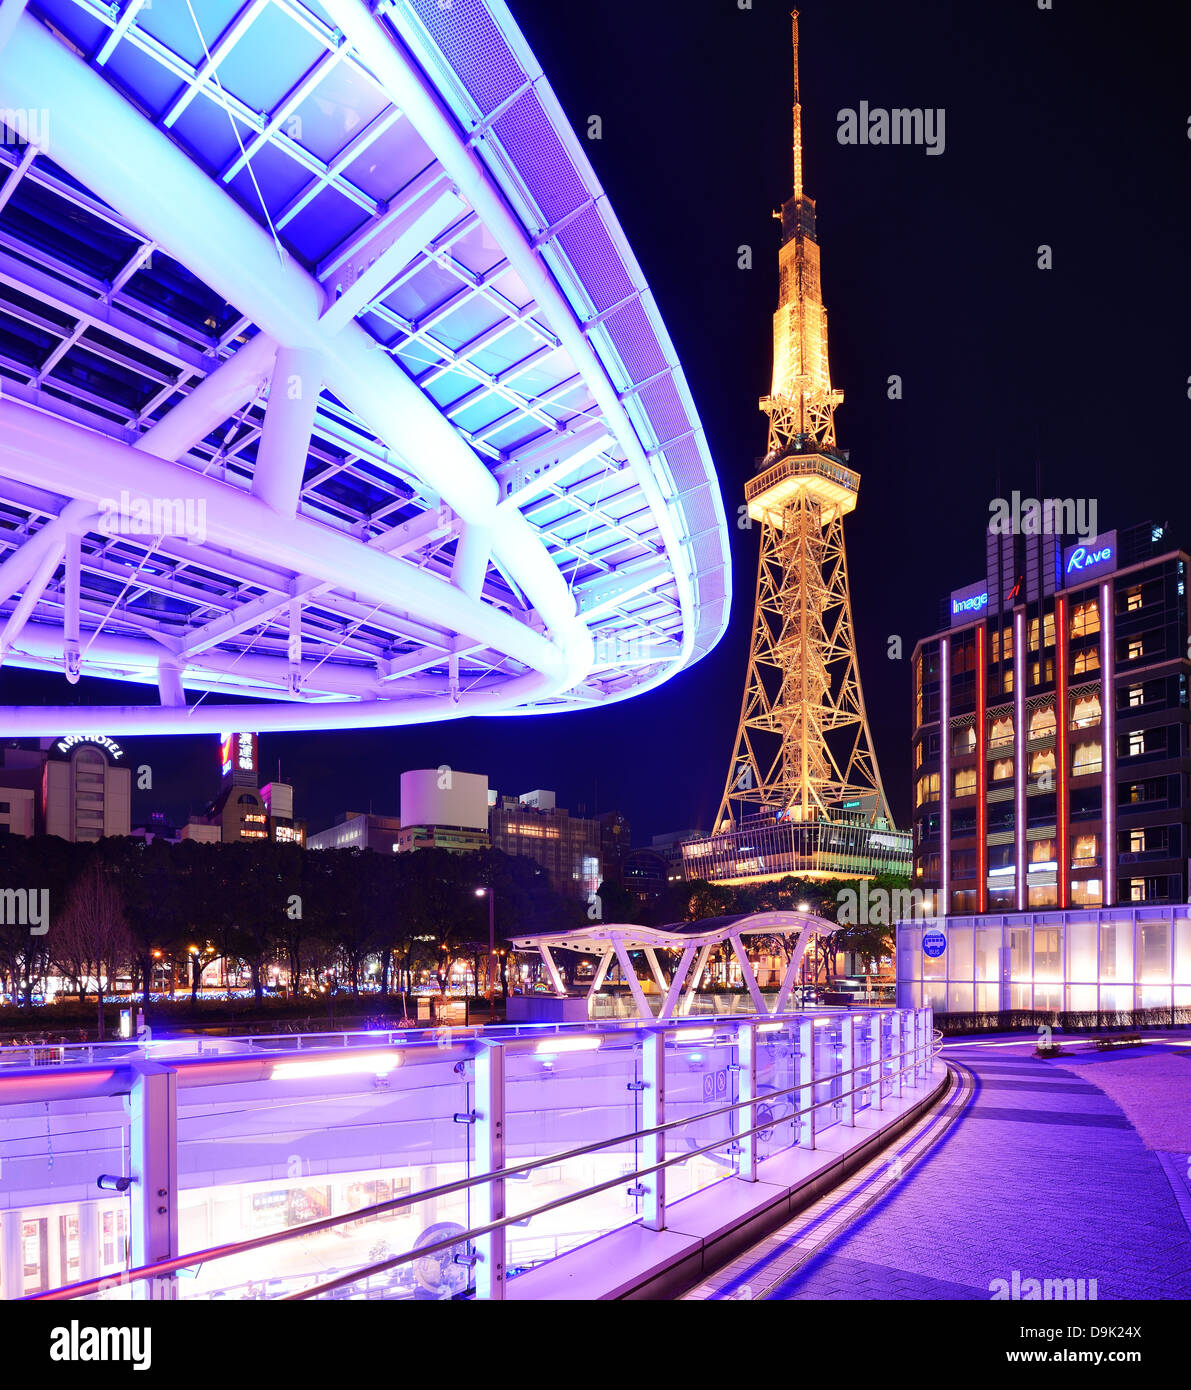 Nagoya, Japan at Oasis 21 and TV Tower. - Stock Image